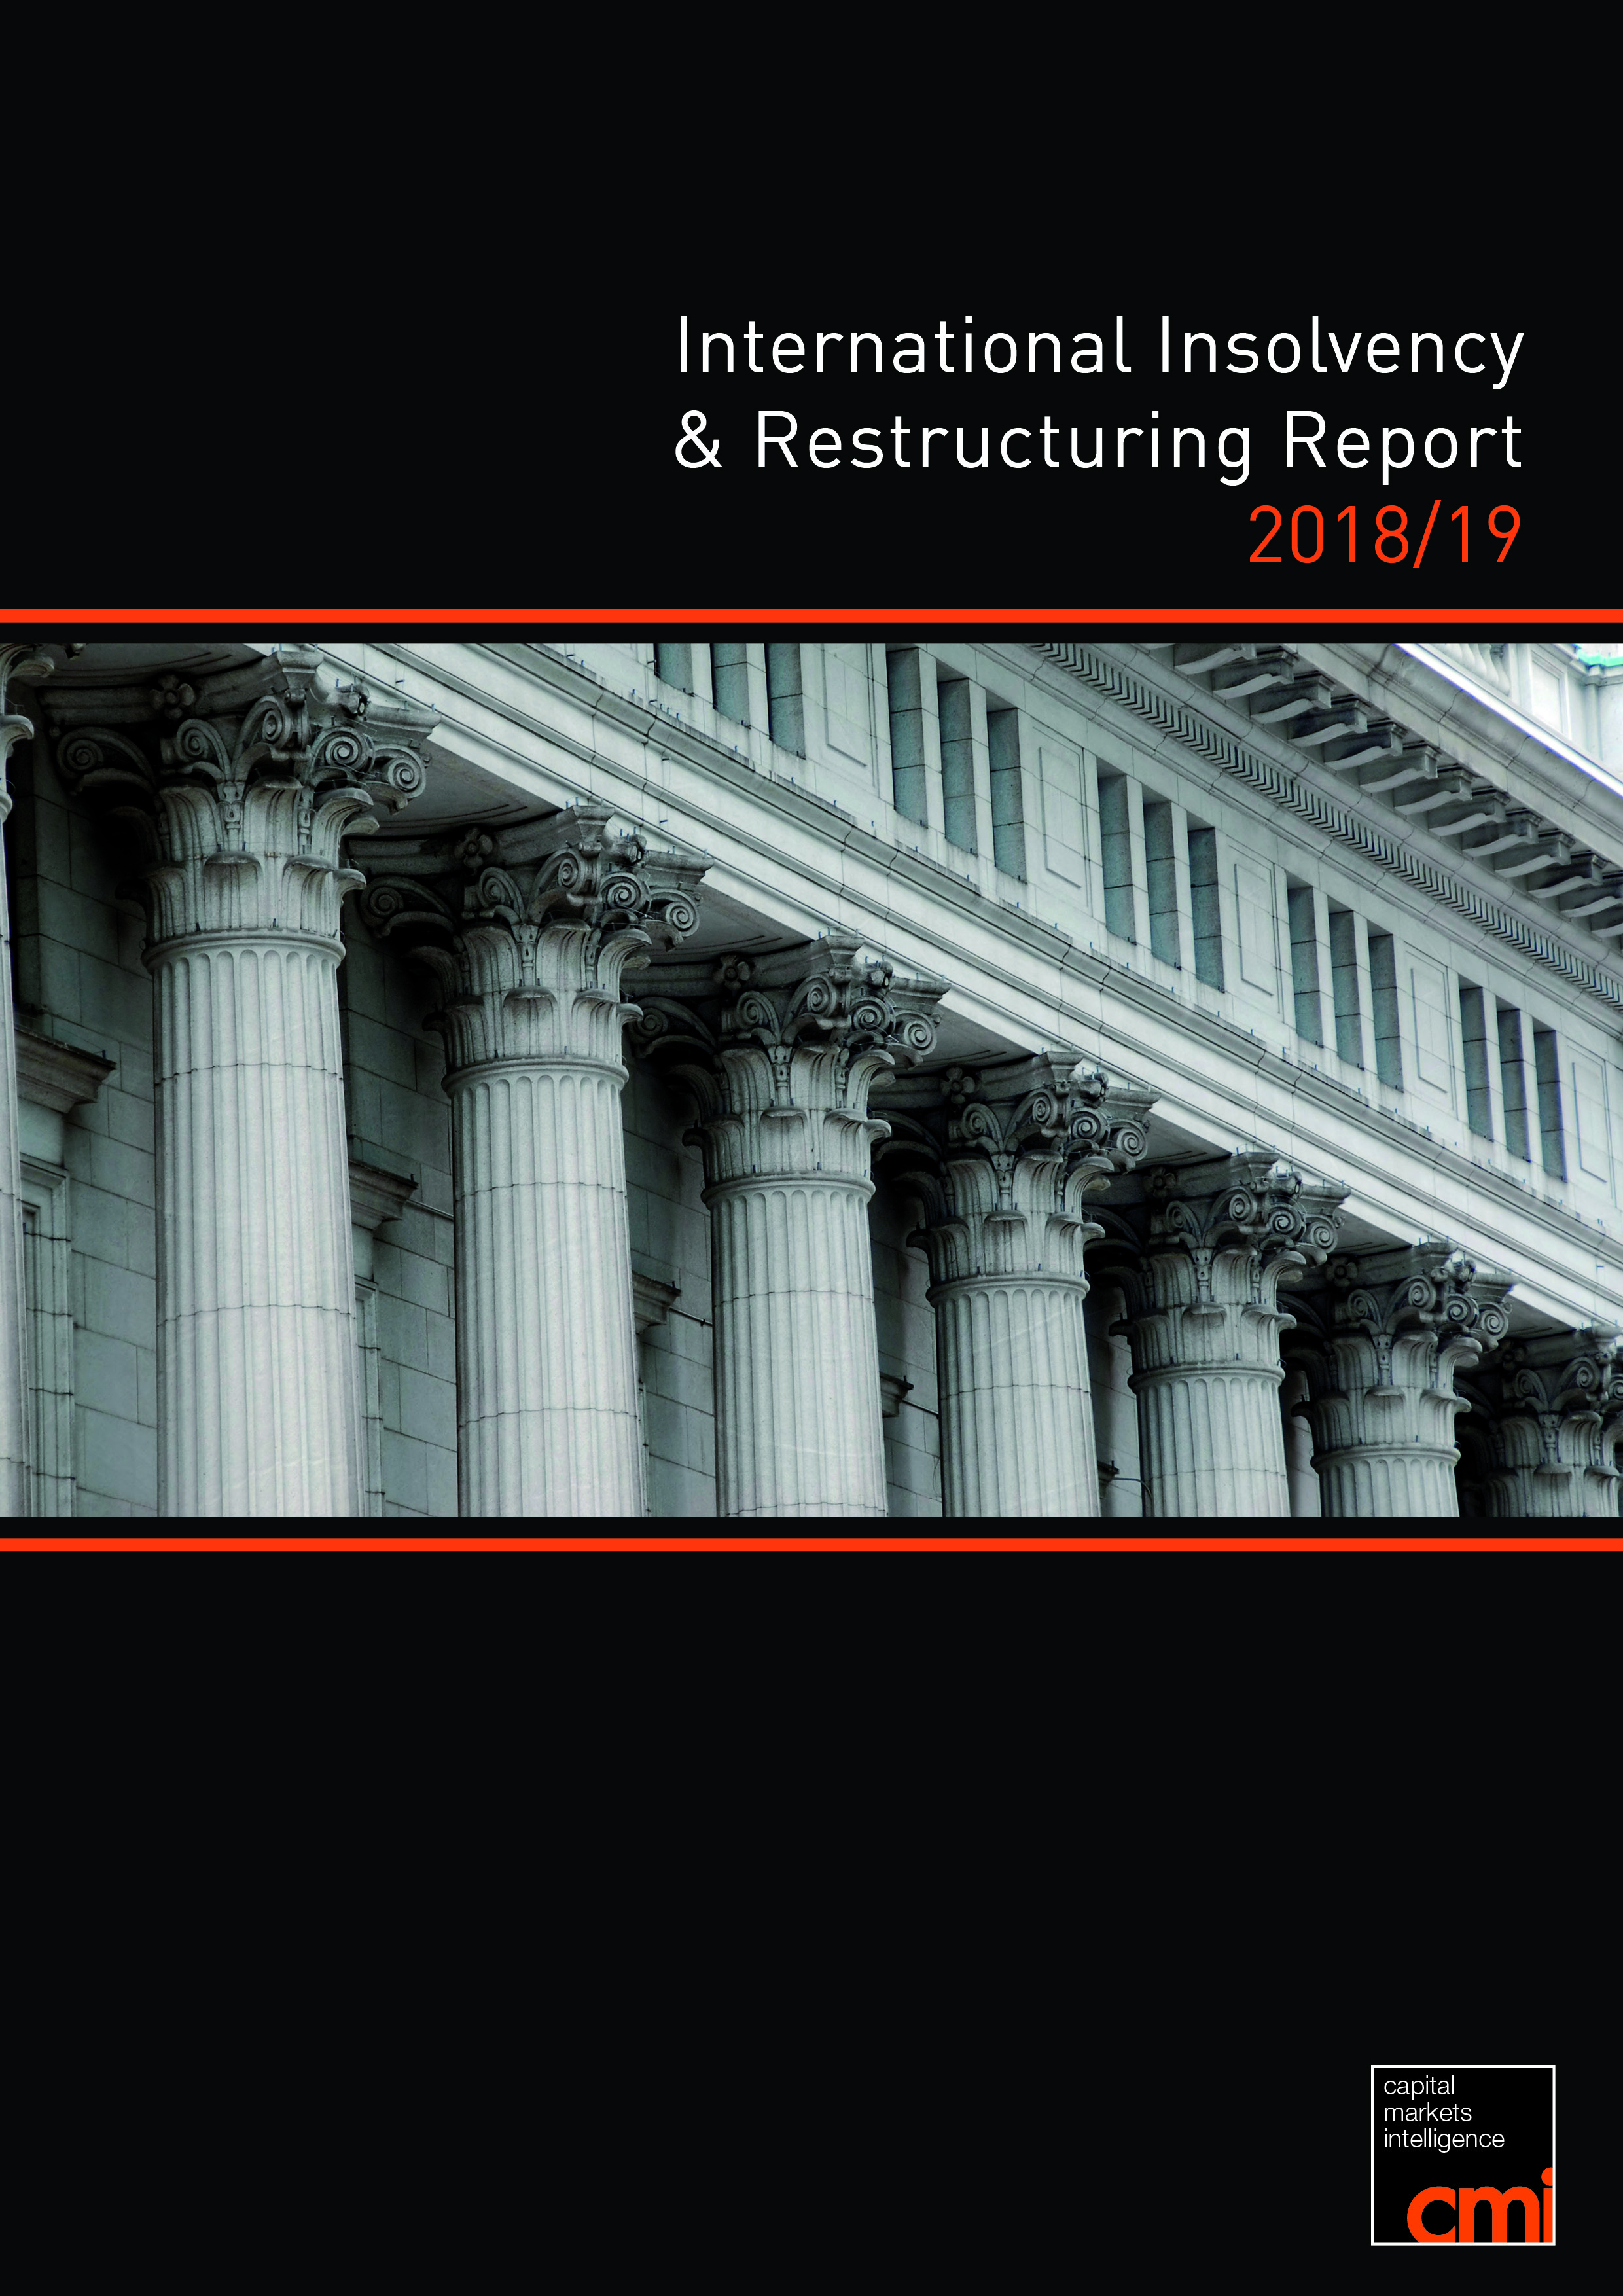 International Insolvency & Restructuring Report 2018/19